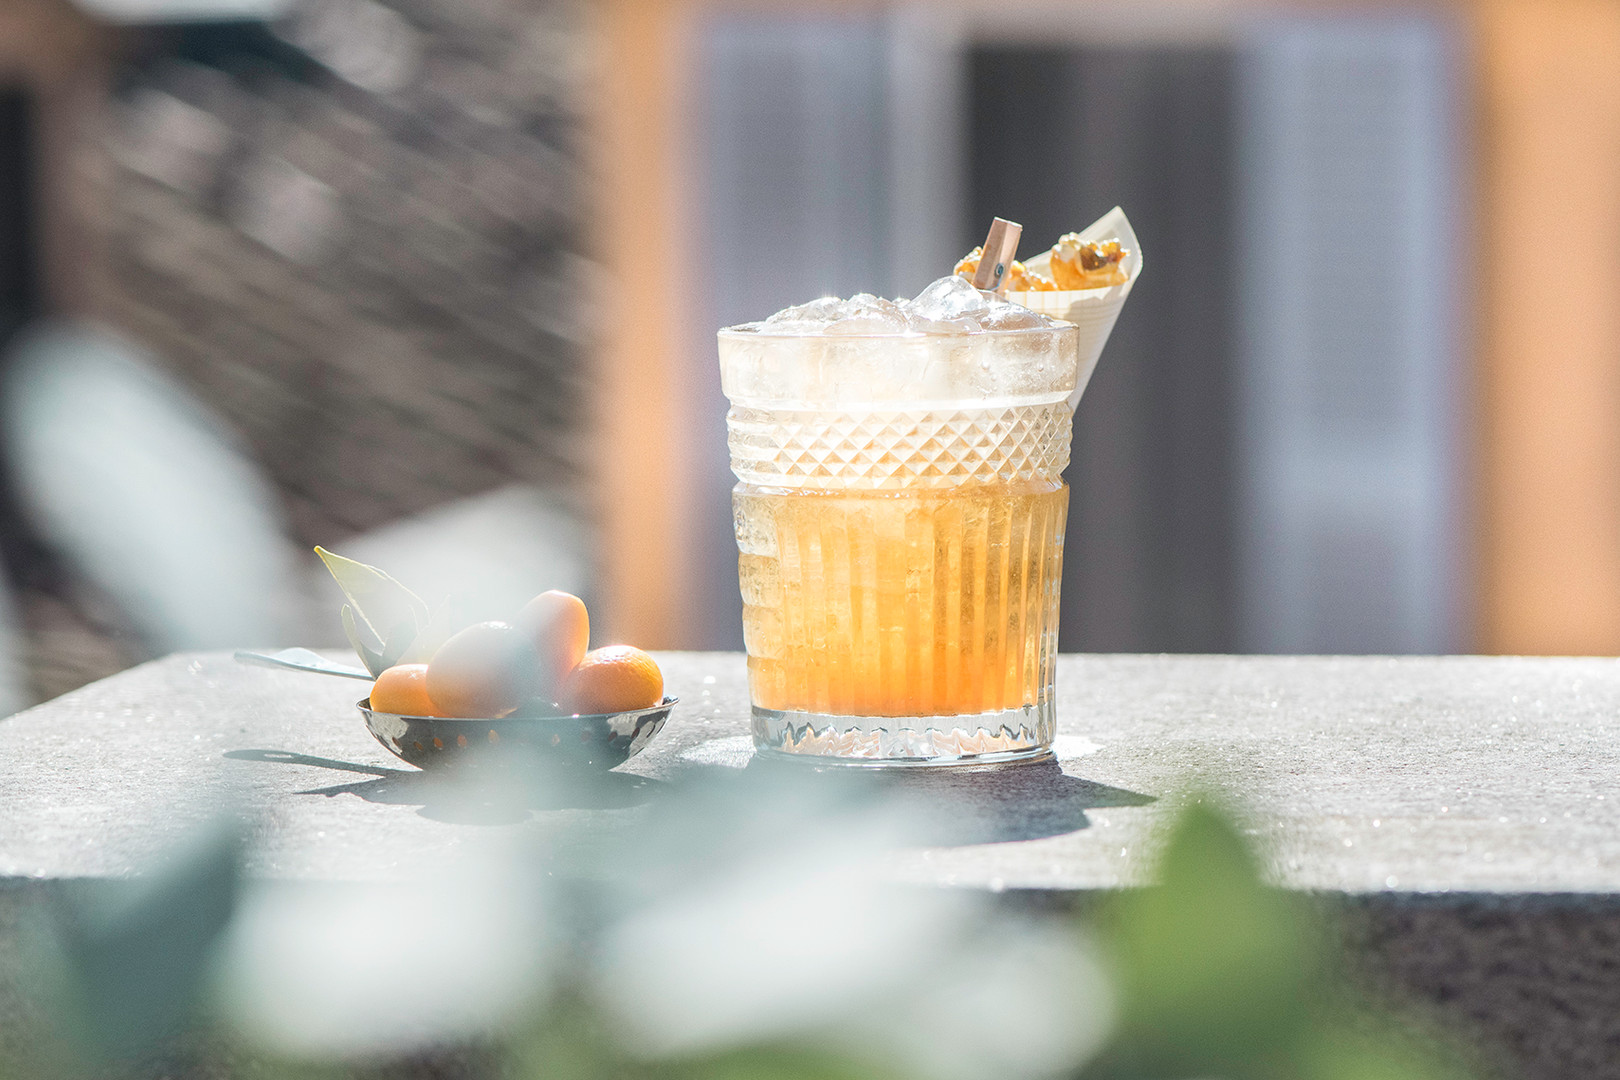 photographie-cocktail-spiritueux-ladoucesauvagerie-06